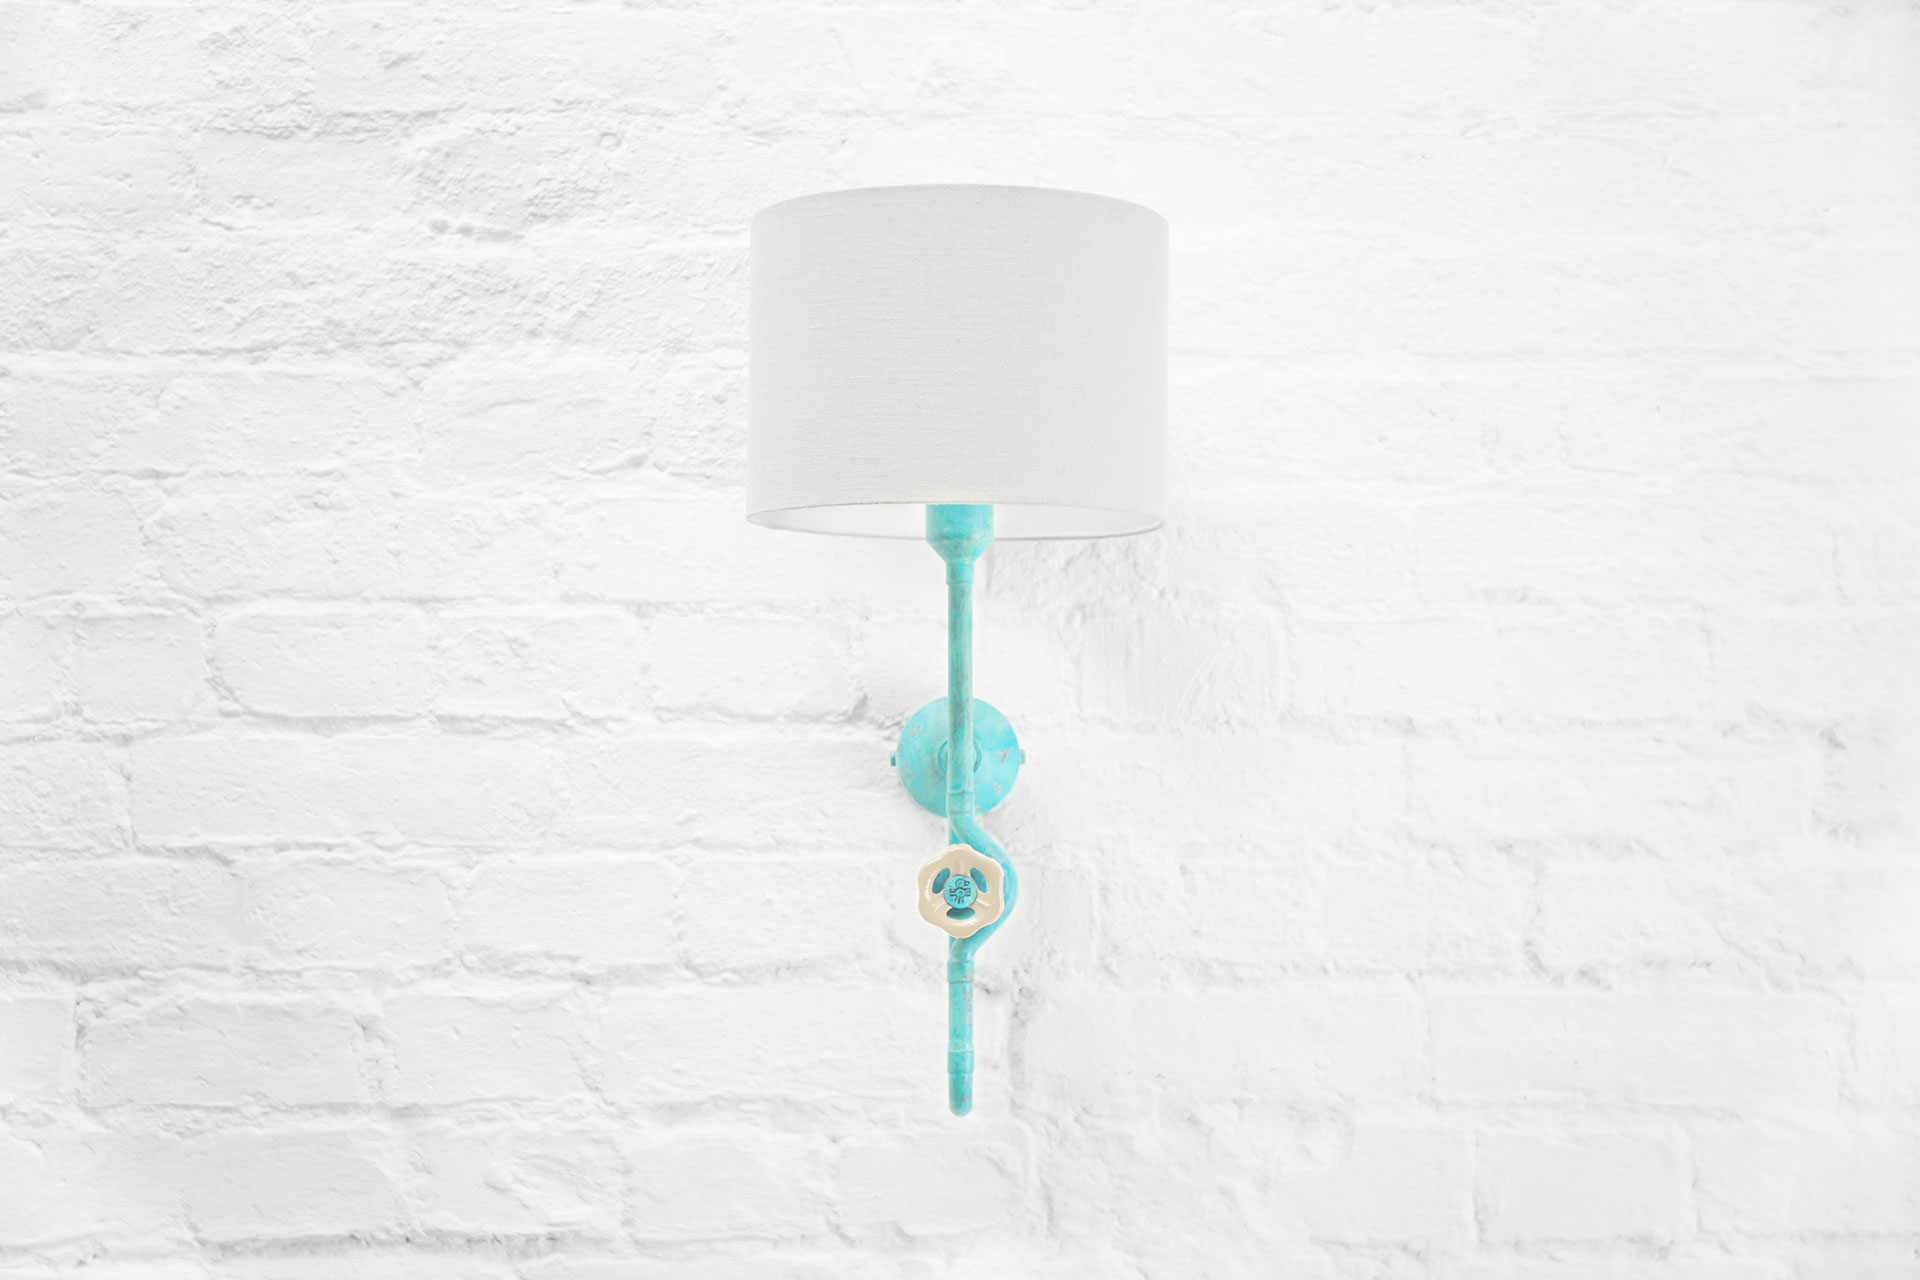 Unique turquoise sconce in cozy design aparment